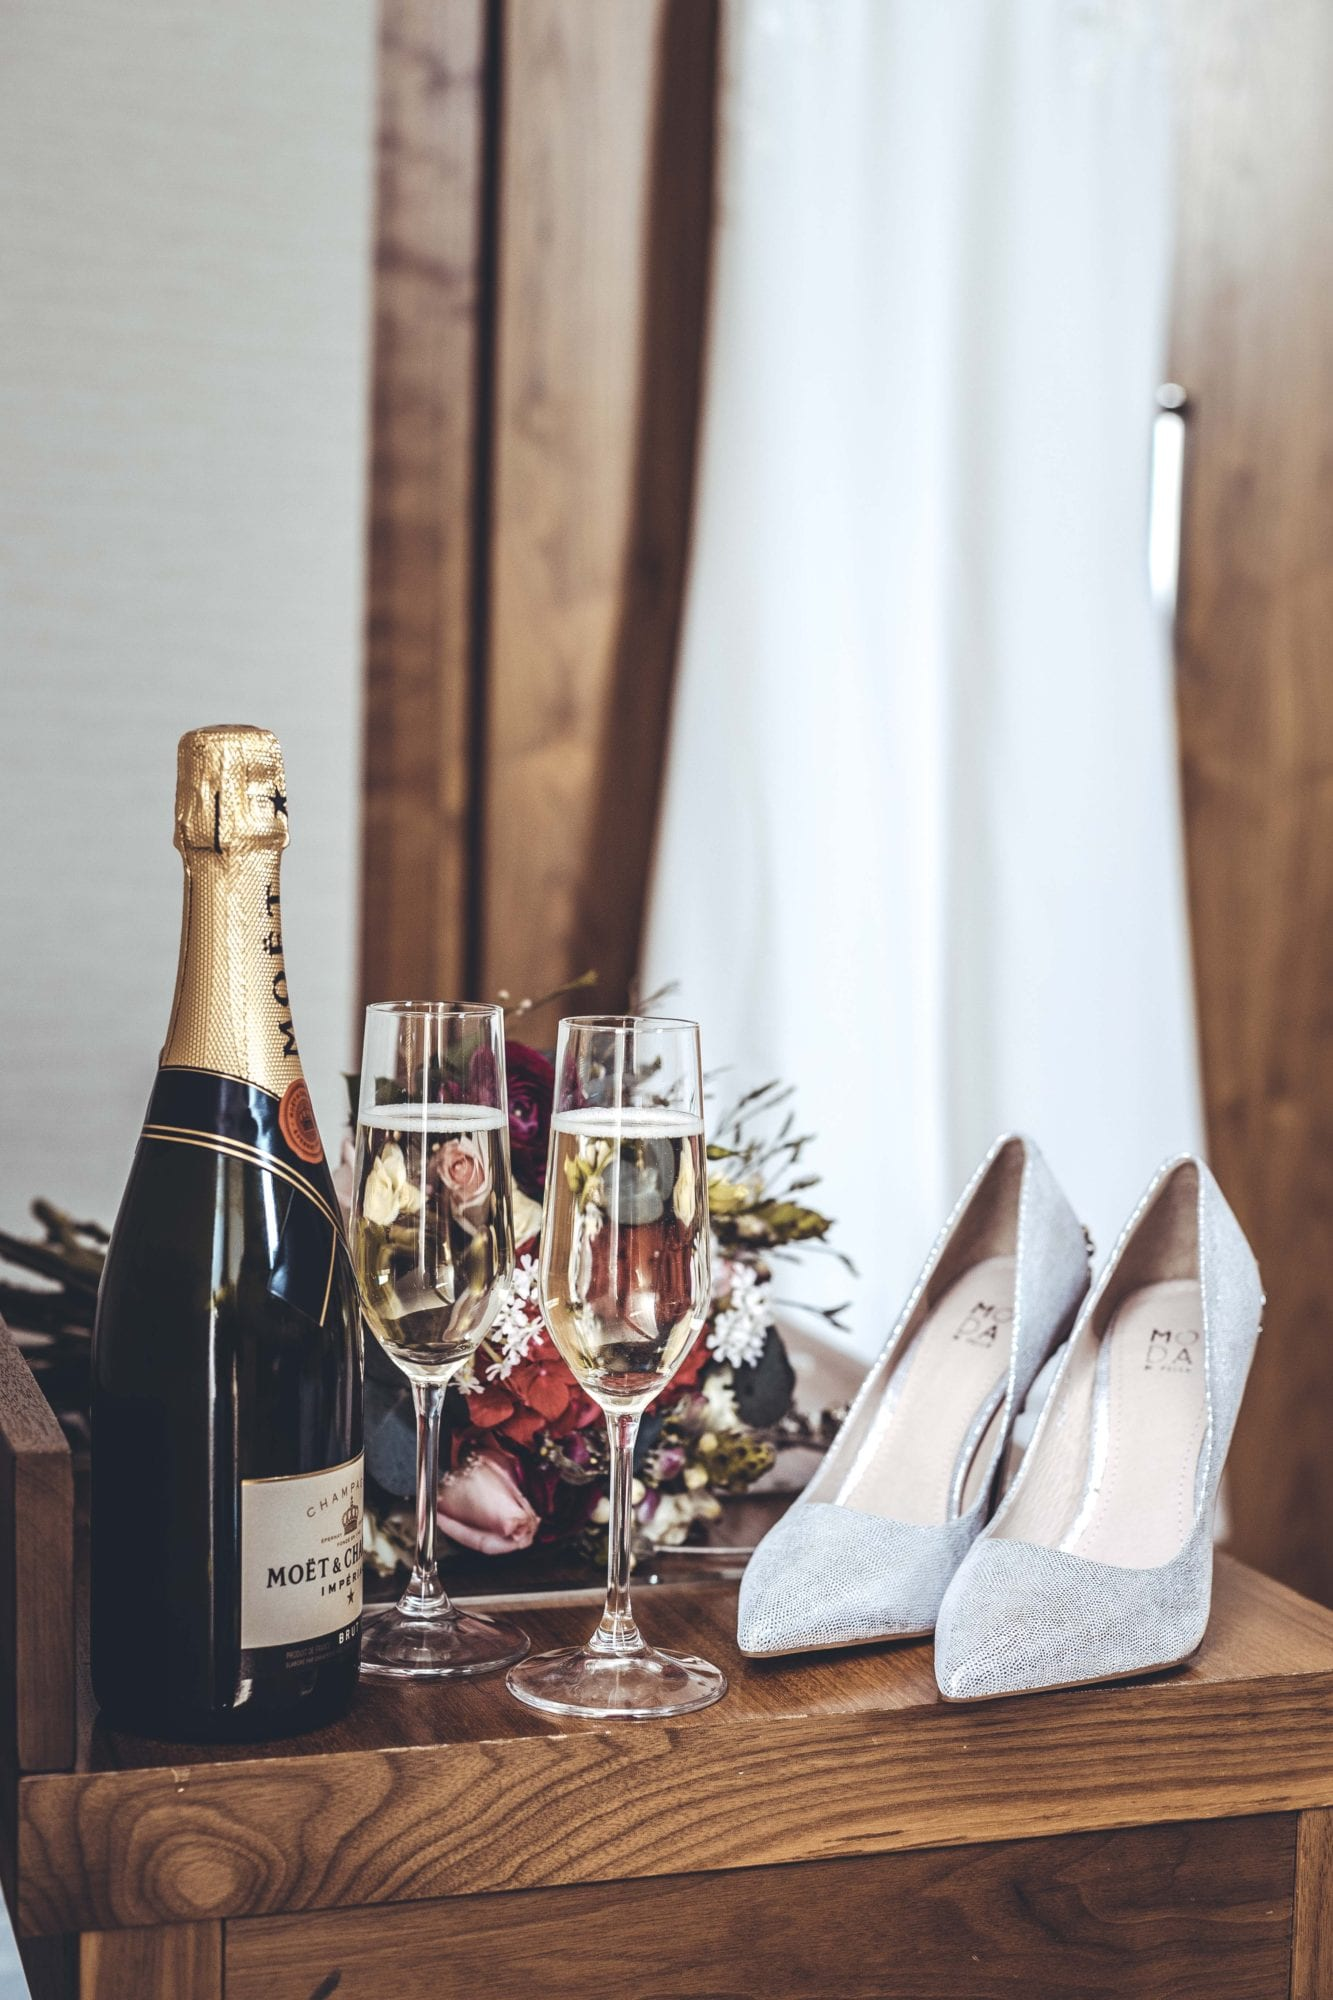 The Grand Wedding Shoes & Champagne